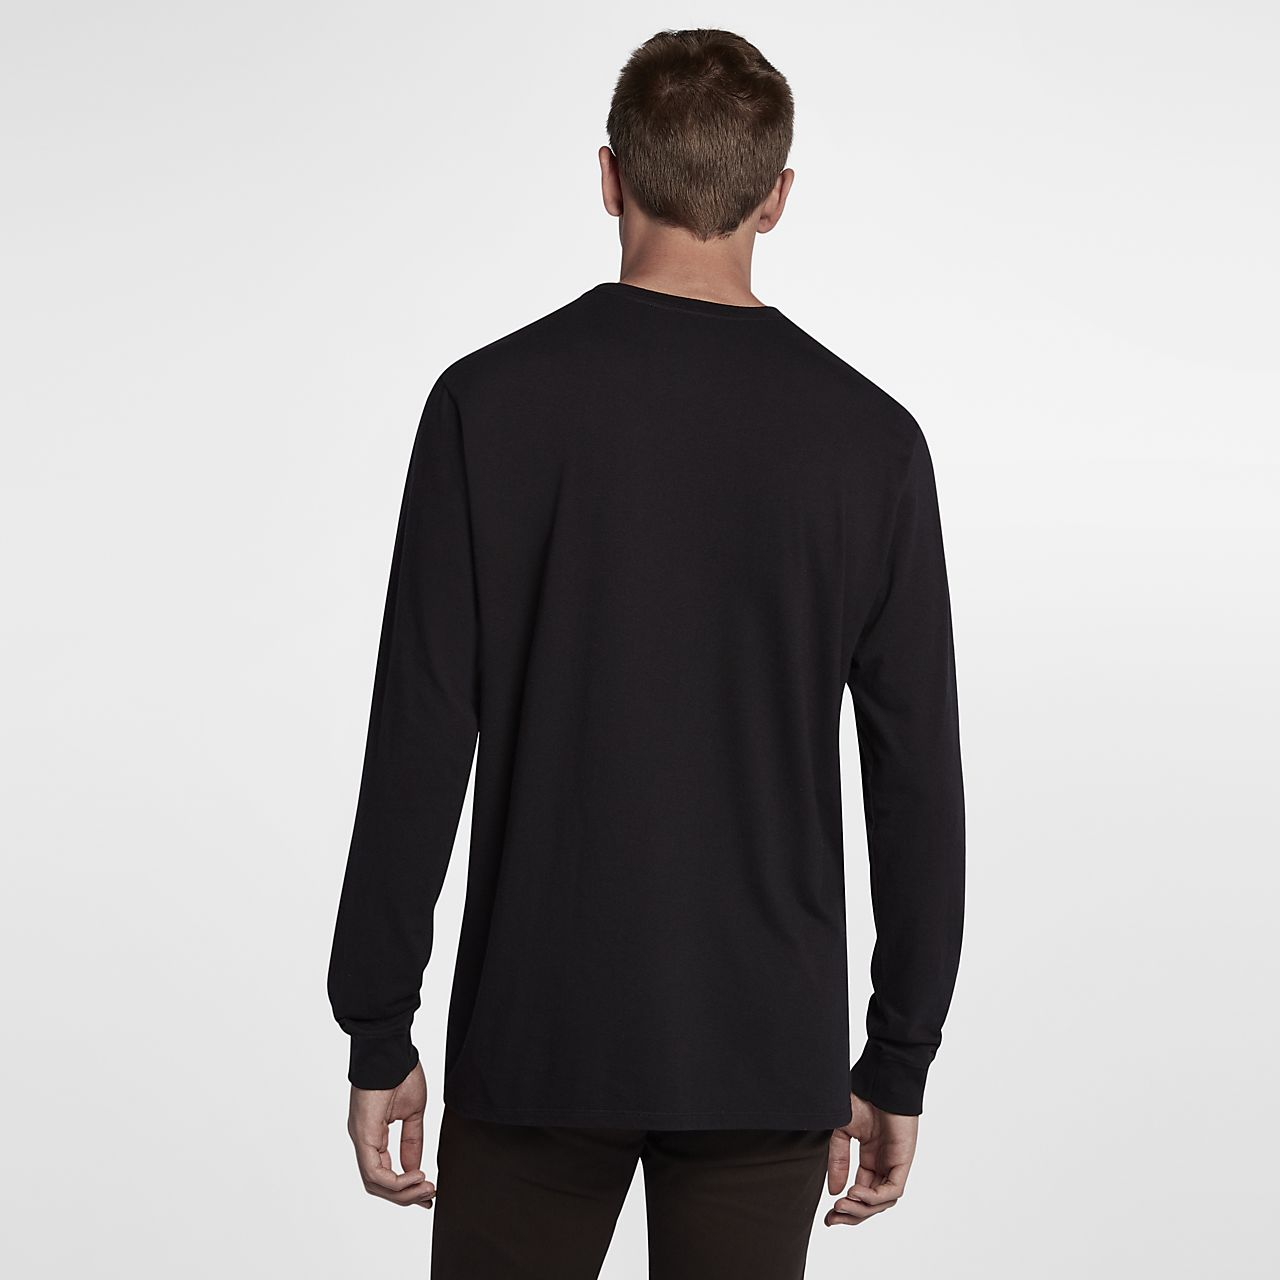 Hurley Pendleton Men's Long Sleeve T-Shirt. Nike.com